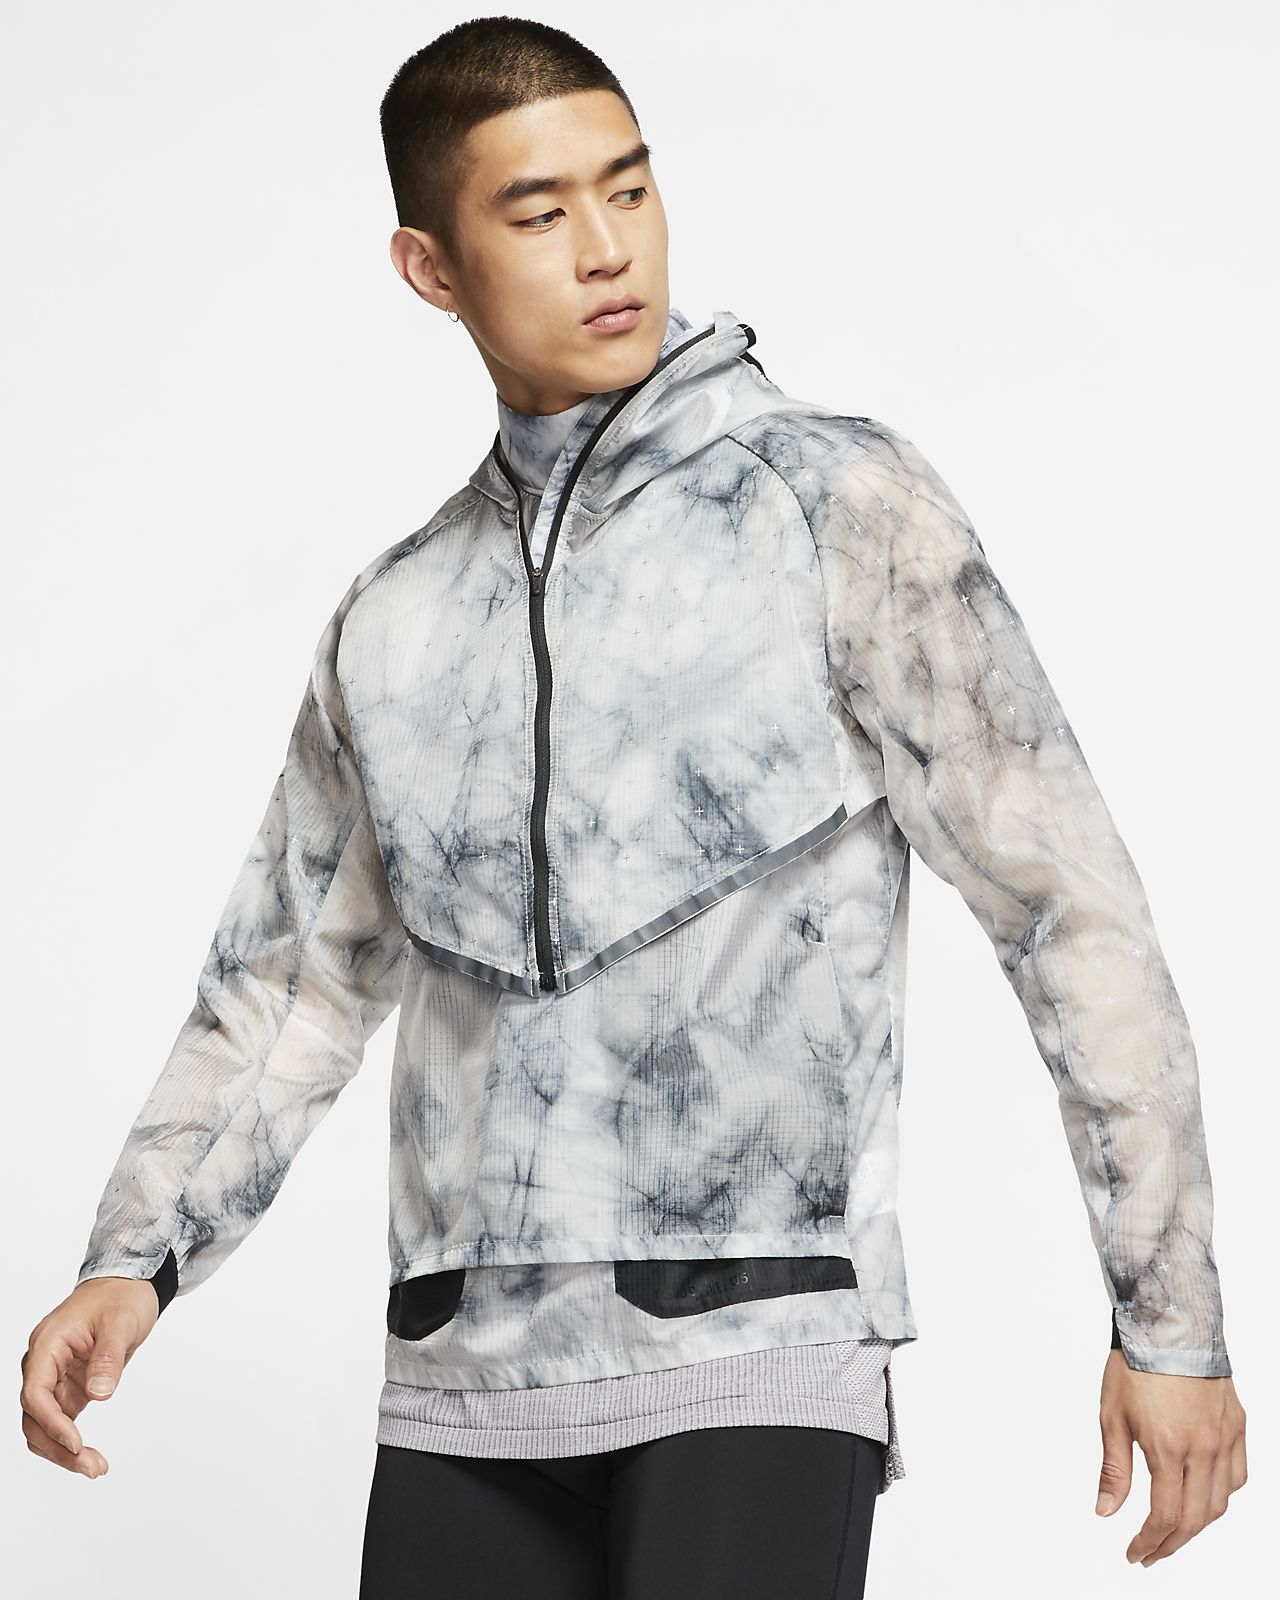 Nike Tech Pack Men's Hooded Running Jacket